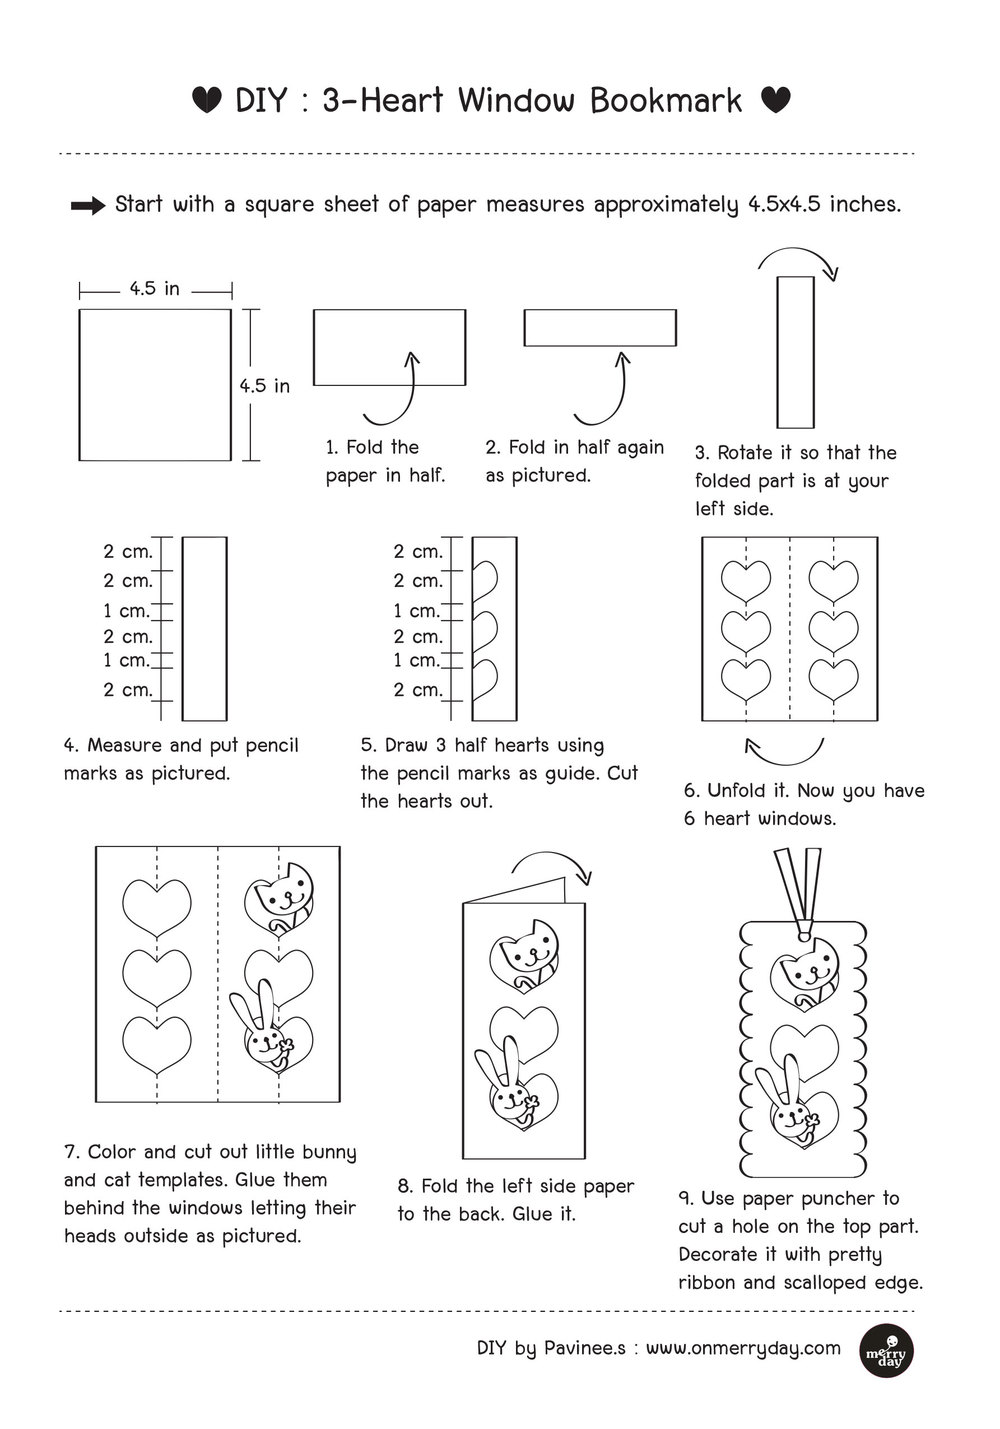 diy-instruction03-eng.jpg